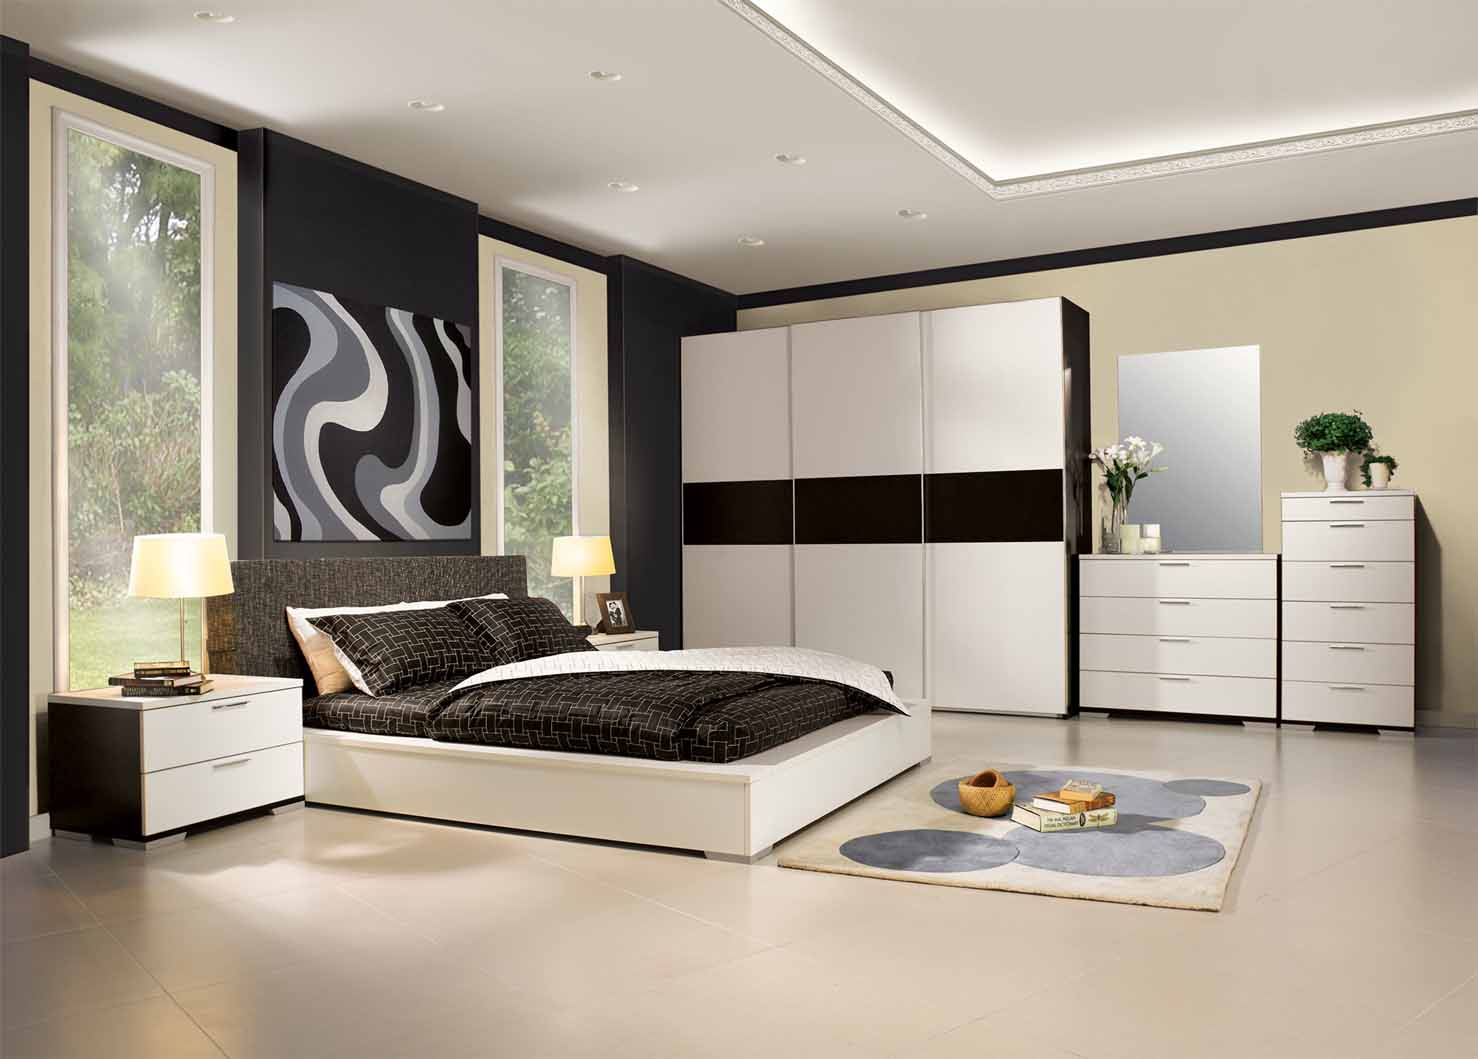 modern black bedroom furniture popular interior house ideas. Black Bedroom Furniture Sets. Home Design Ideas